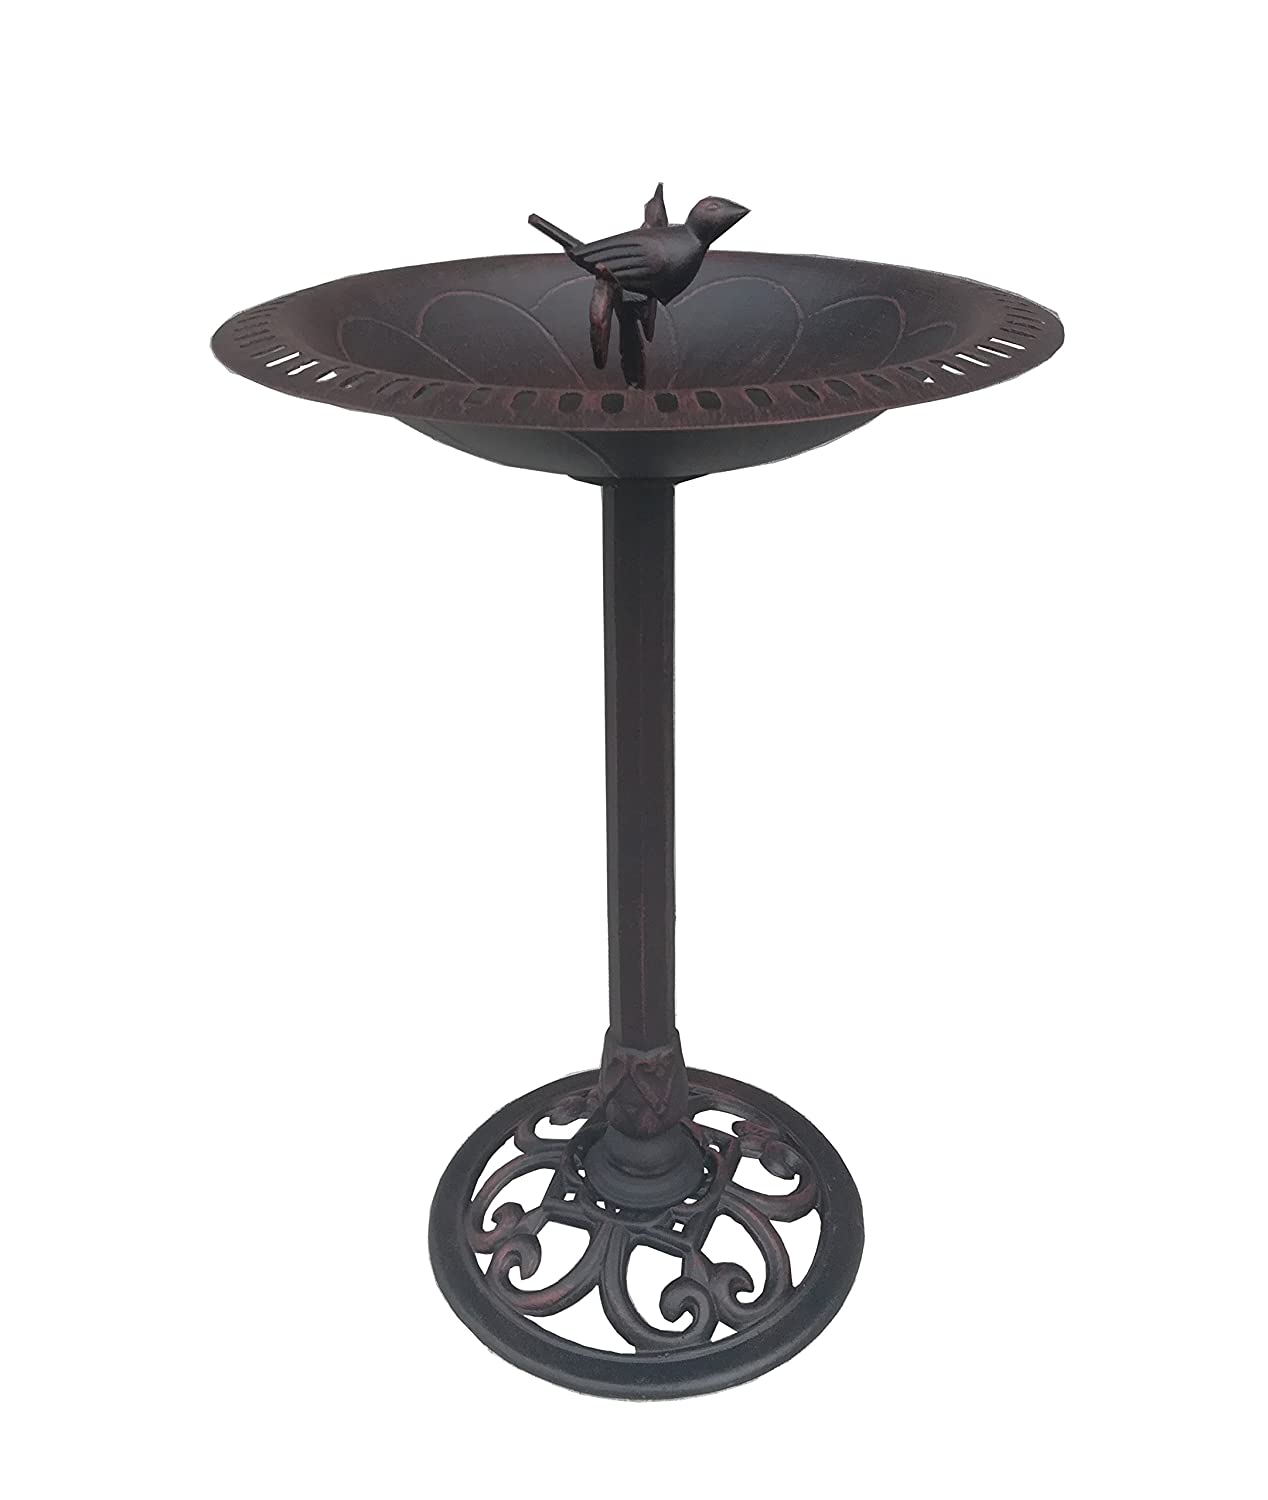 Cast Iron Bird and Twig Birdbath - Pedestal Birdbath for Yard, Garden Product SKU: BB11115 Pier Surplus